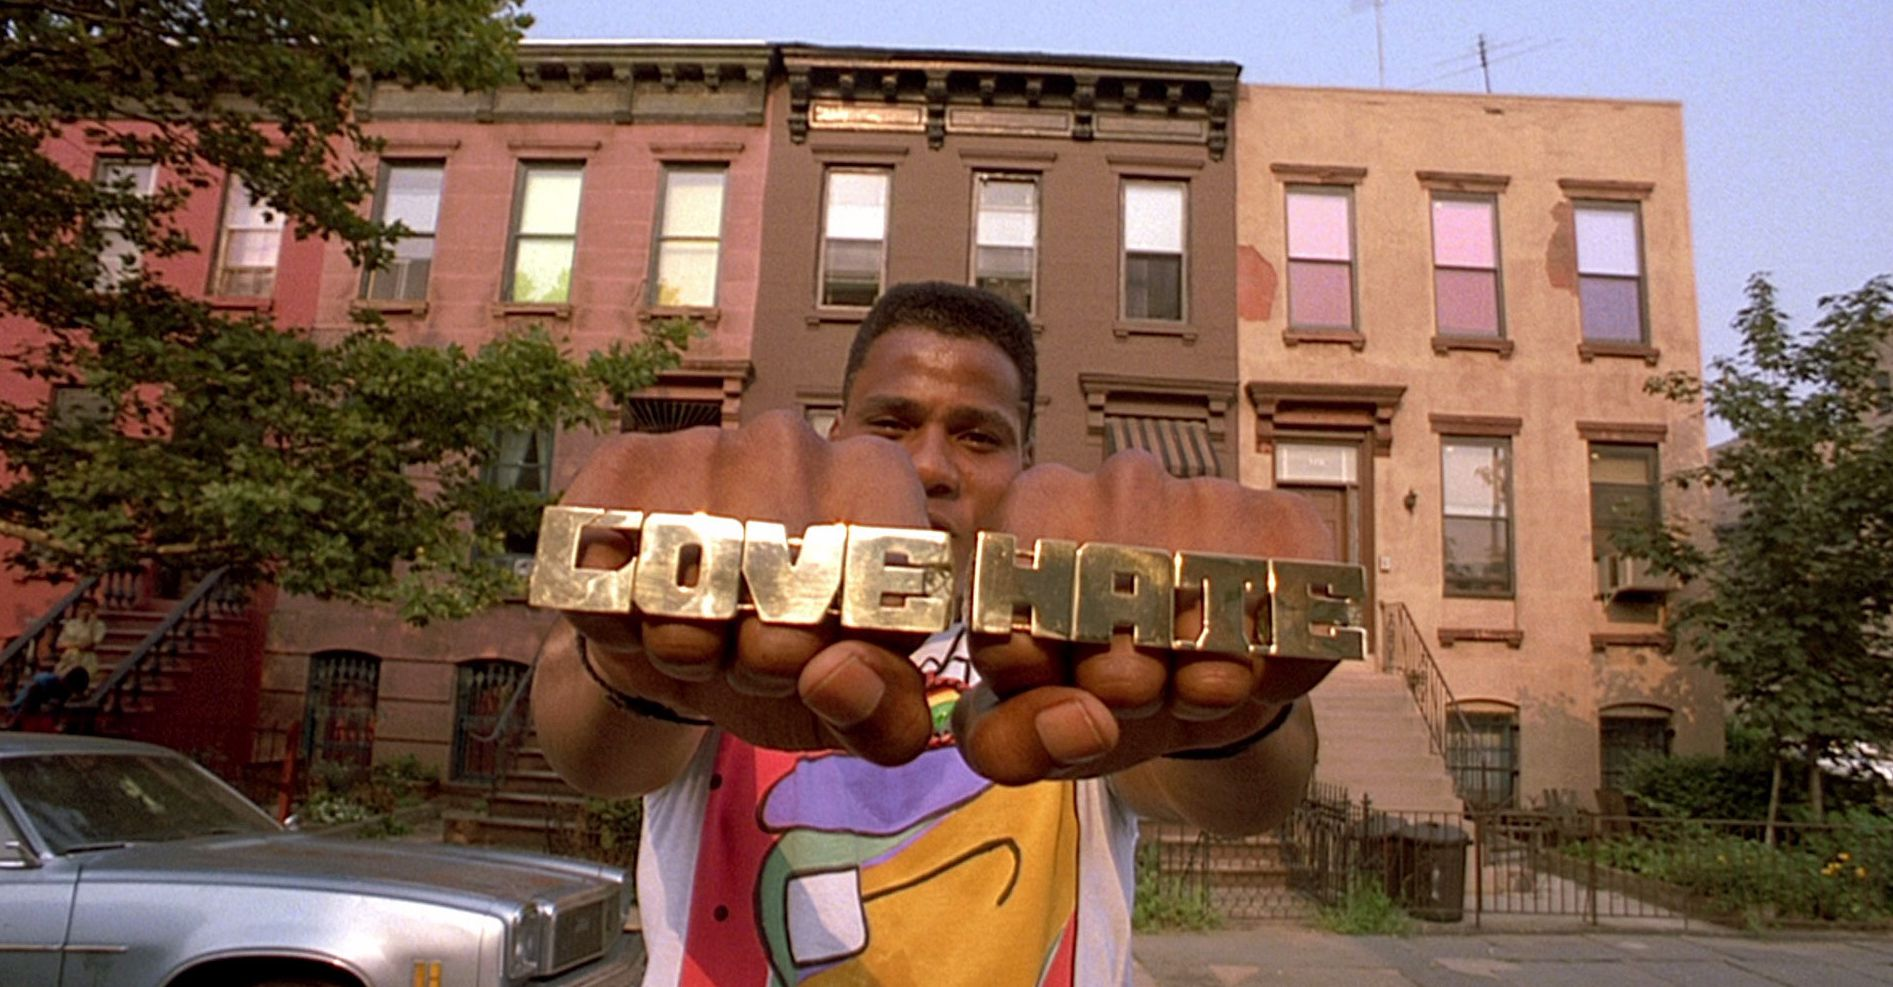 An image from Do the Right Thing